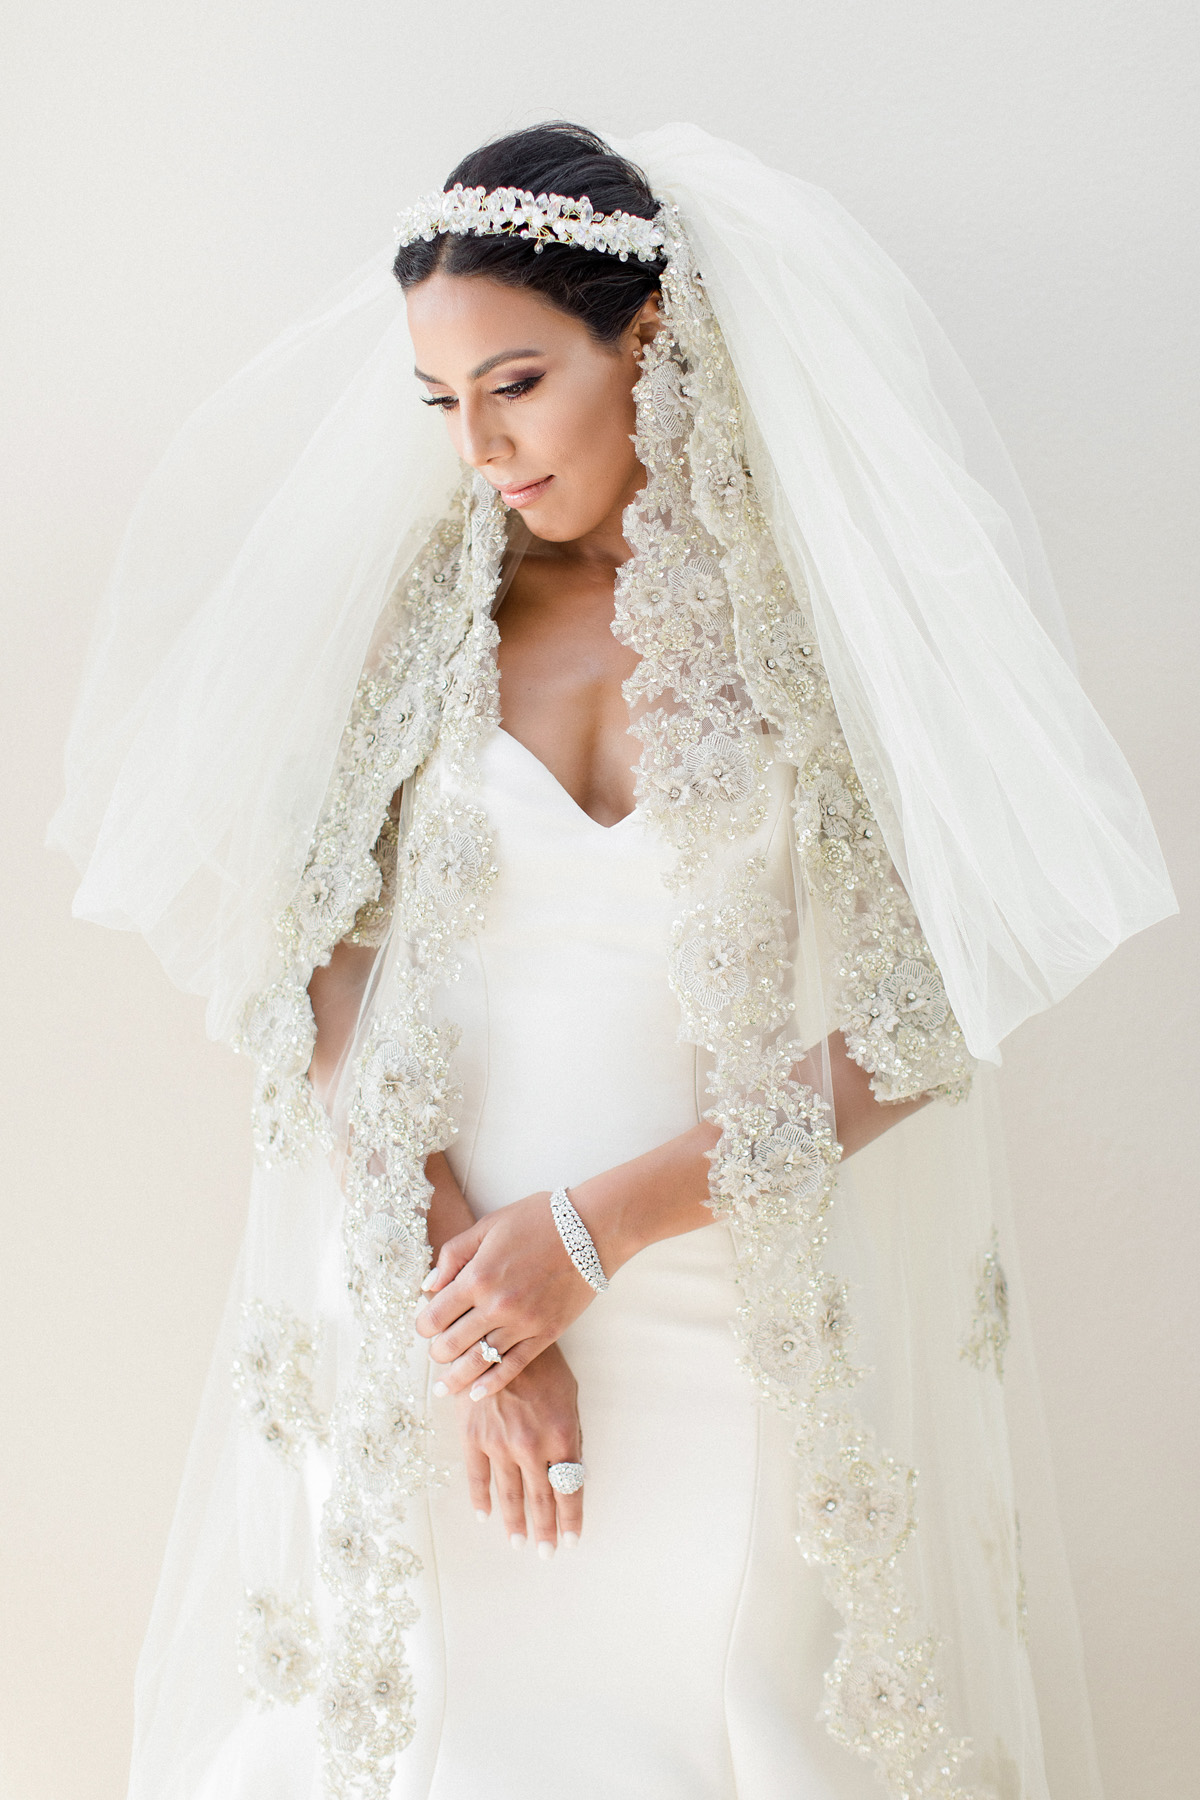 Monique Lhuillier wedding dress and dramatic wedding veil